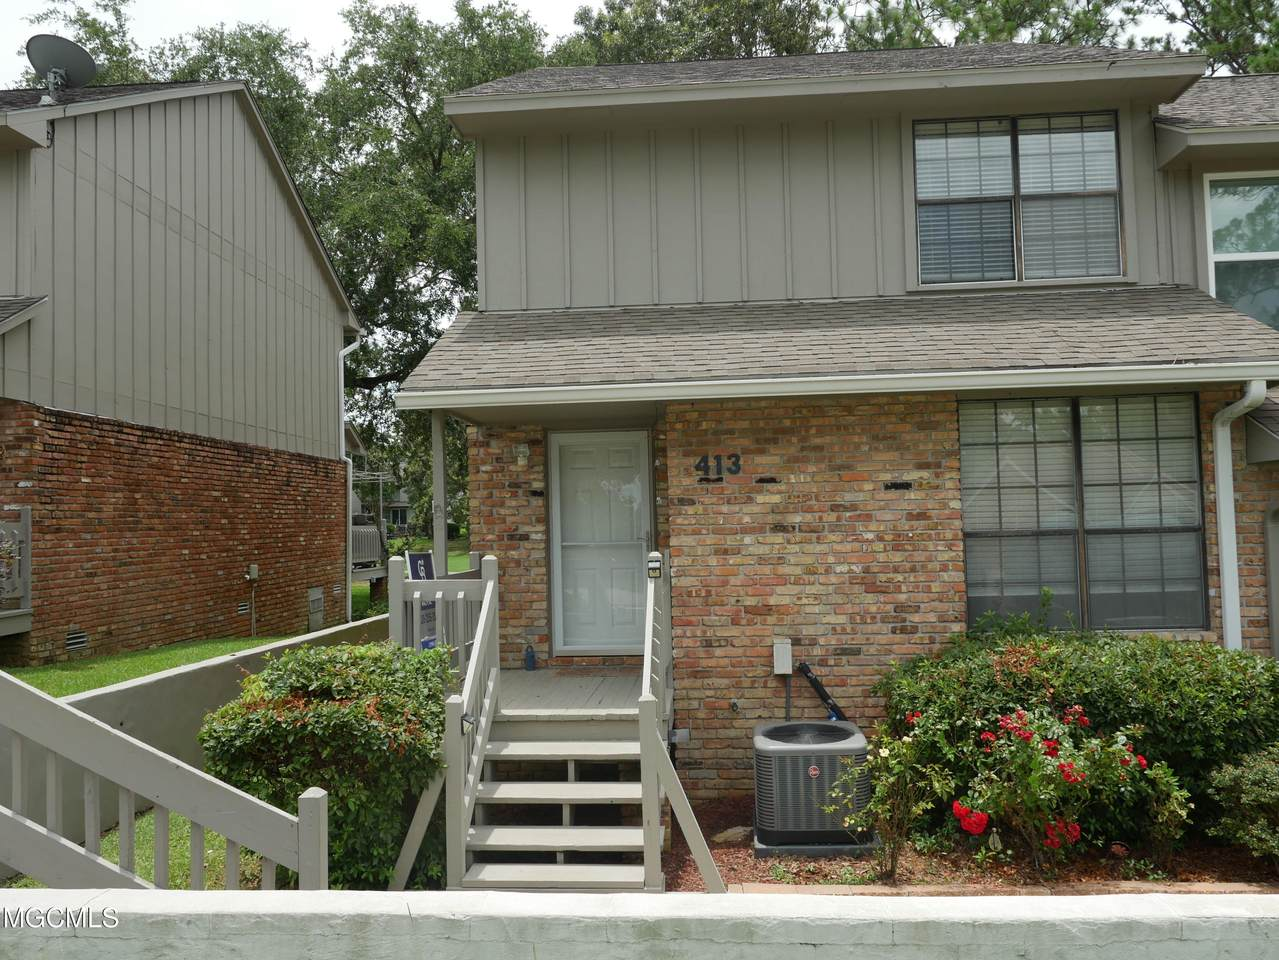 413 Highpoint Dr - Photo 1